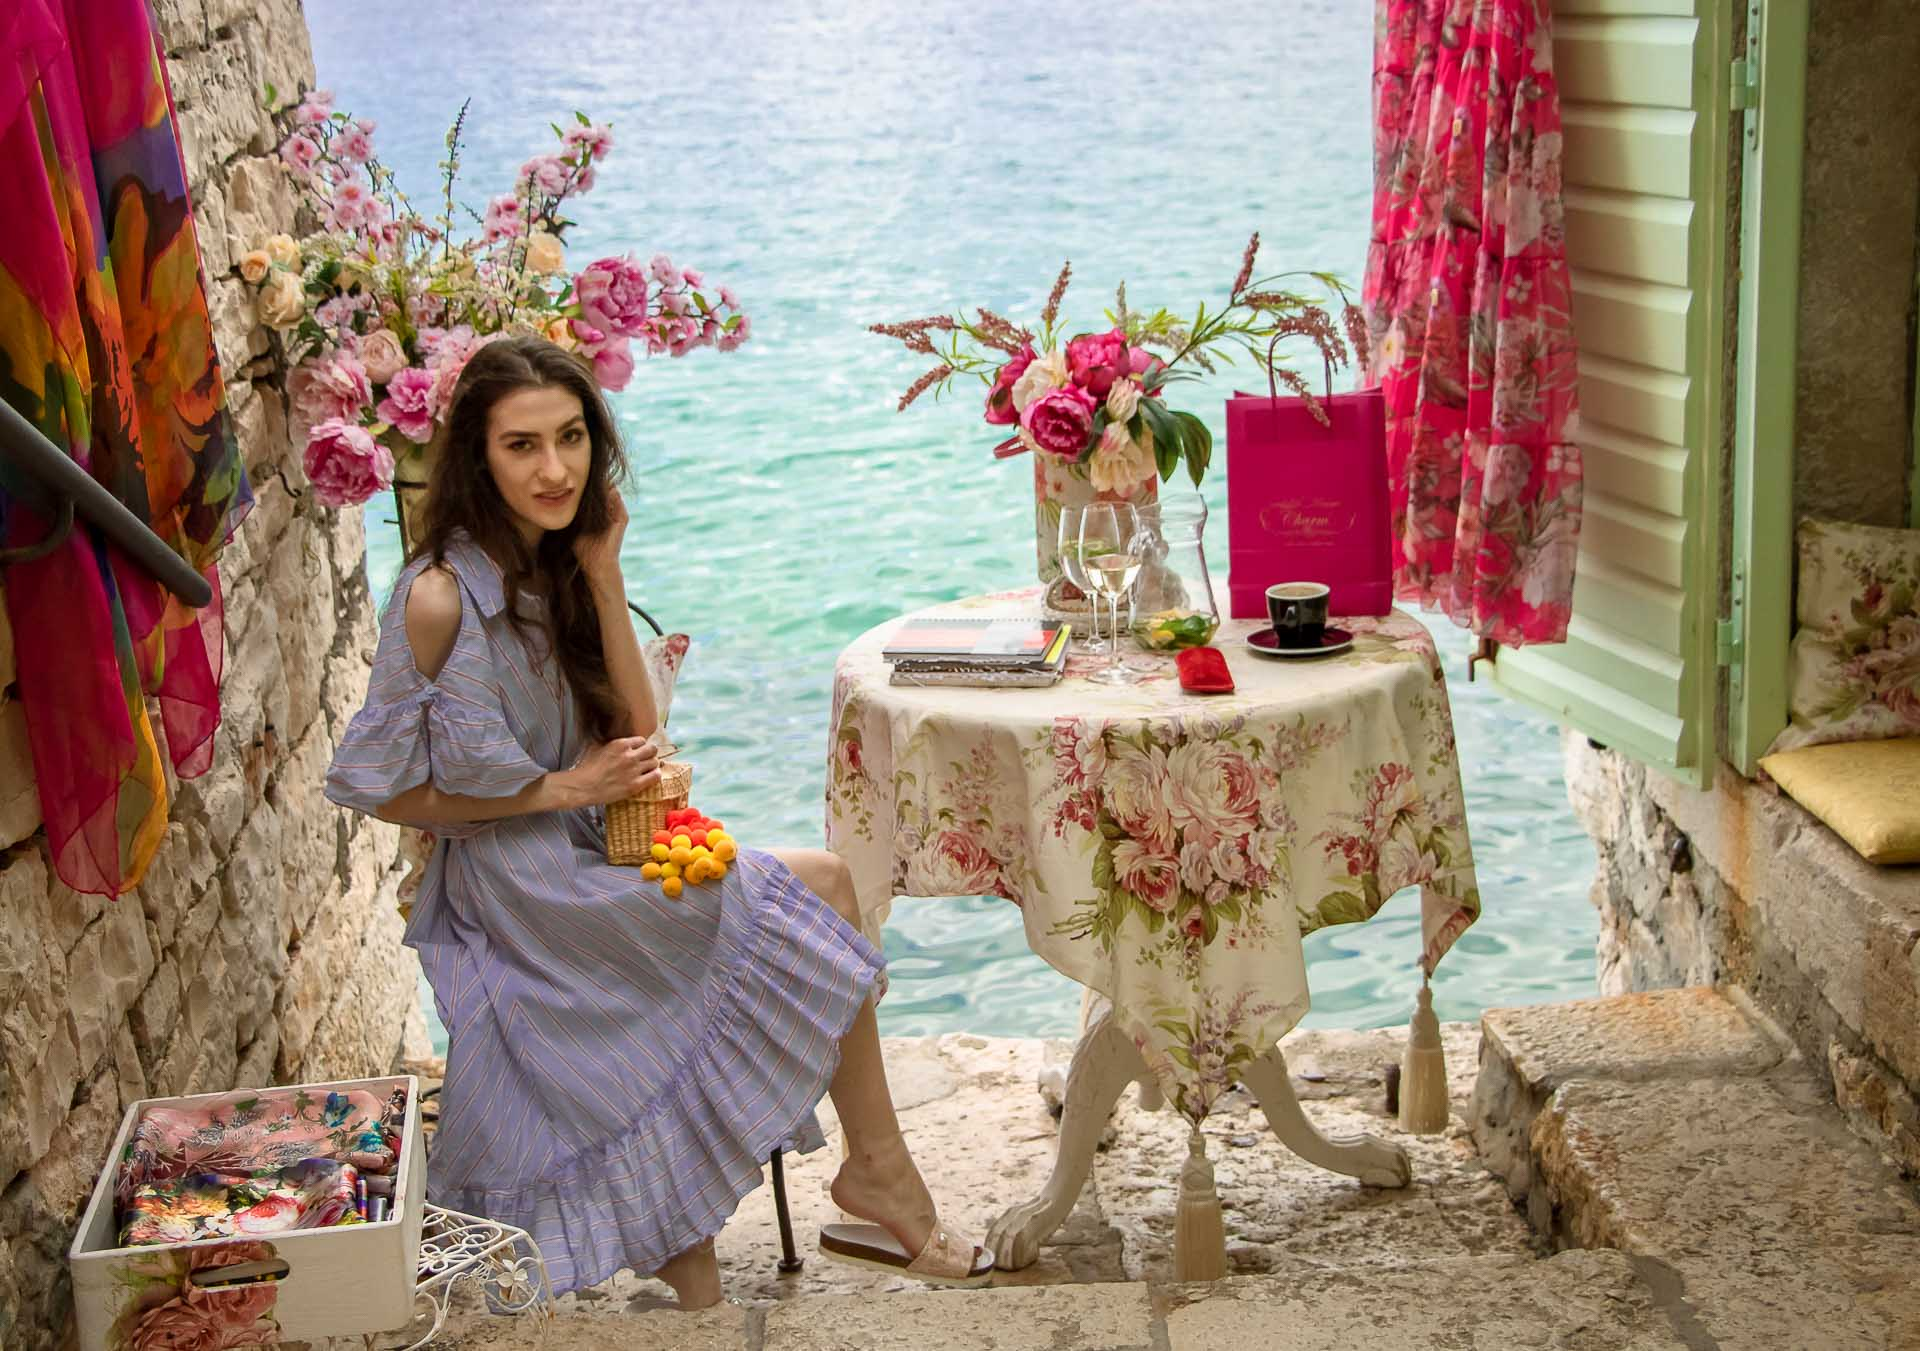 Fashion Blogger Veronika Lipar of Brunette from Wall Street dressed in Storets cold shoulder striped ruffled summer dress, blush lace pool luxe slides, Nannacay basket bag, standing in front of the table with a sea view at the most Instagrammable place in Rovinj Croatia